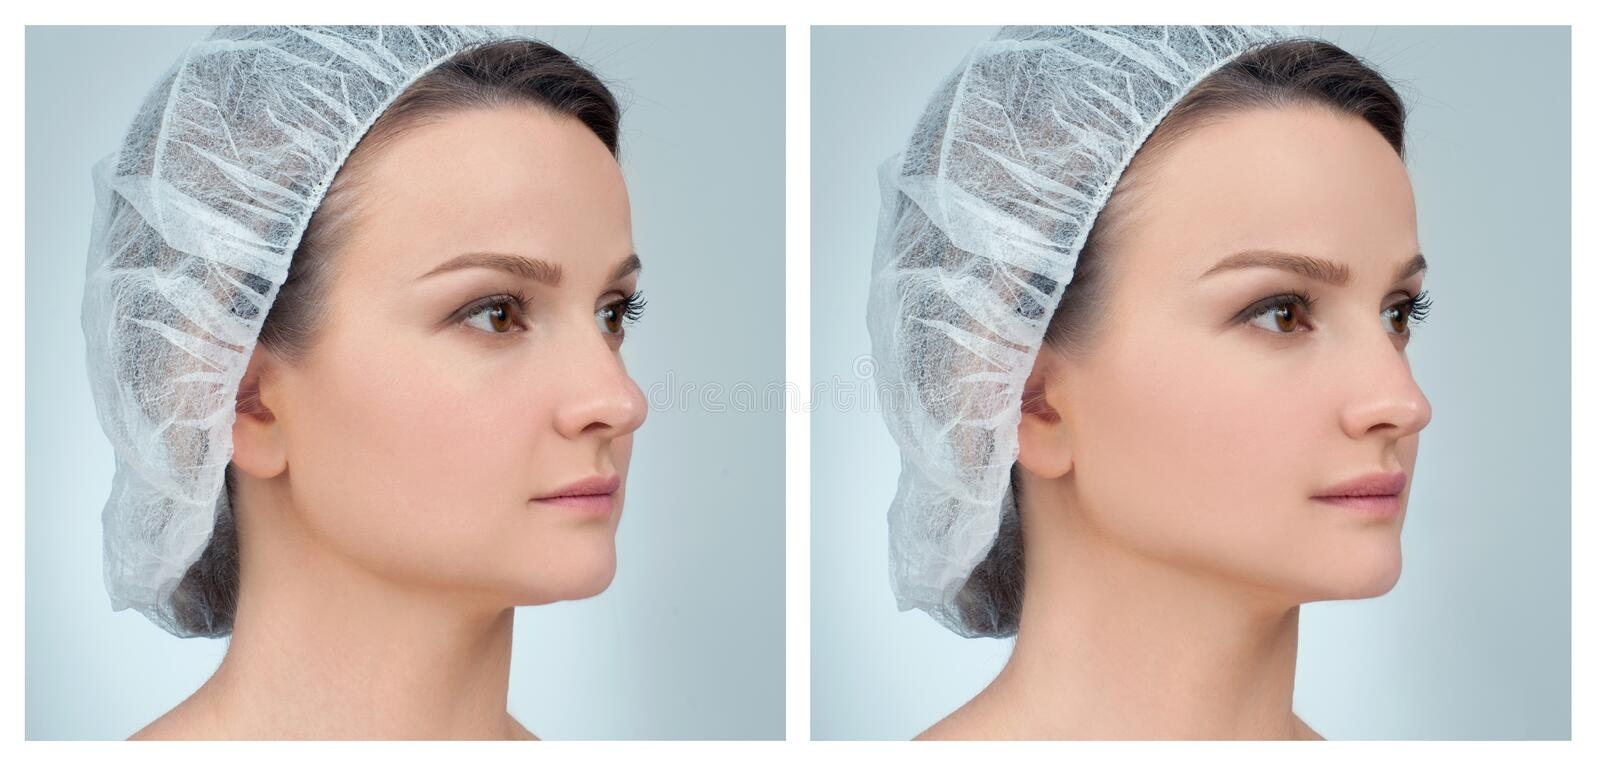 Portrait of female face, before and after rhinoplasty royalty free stock images